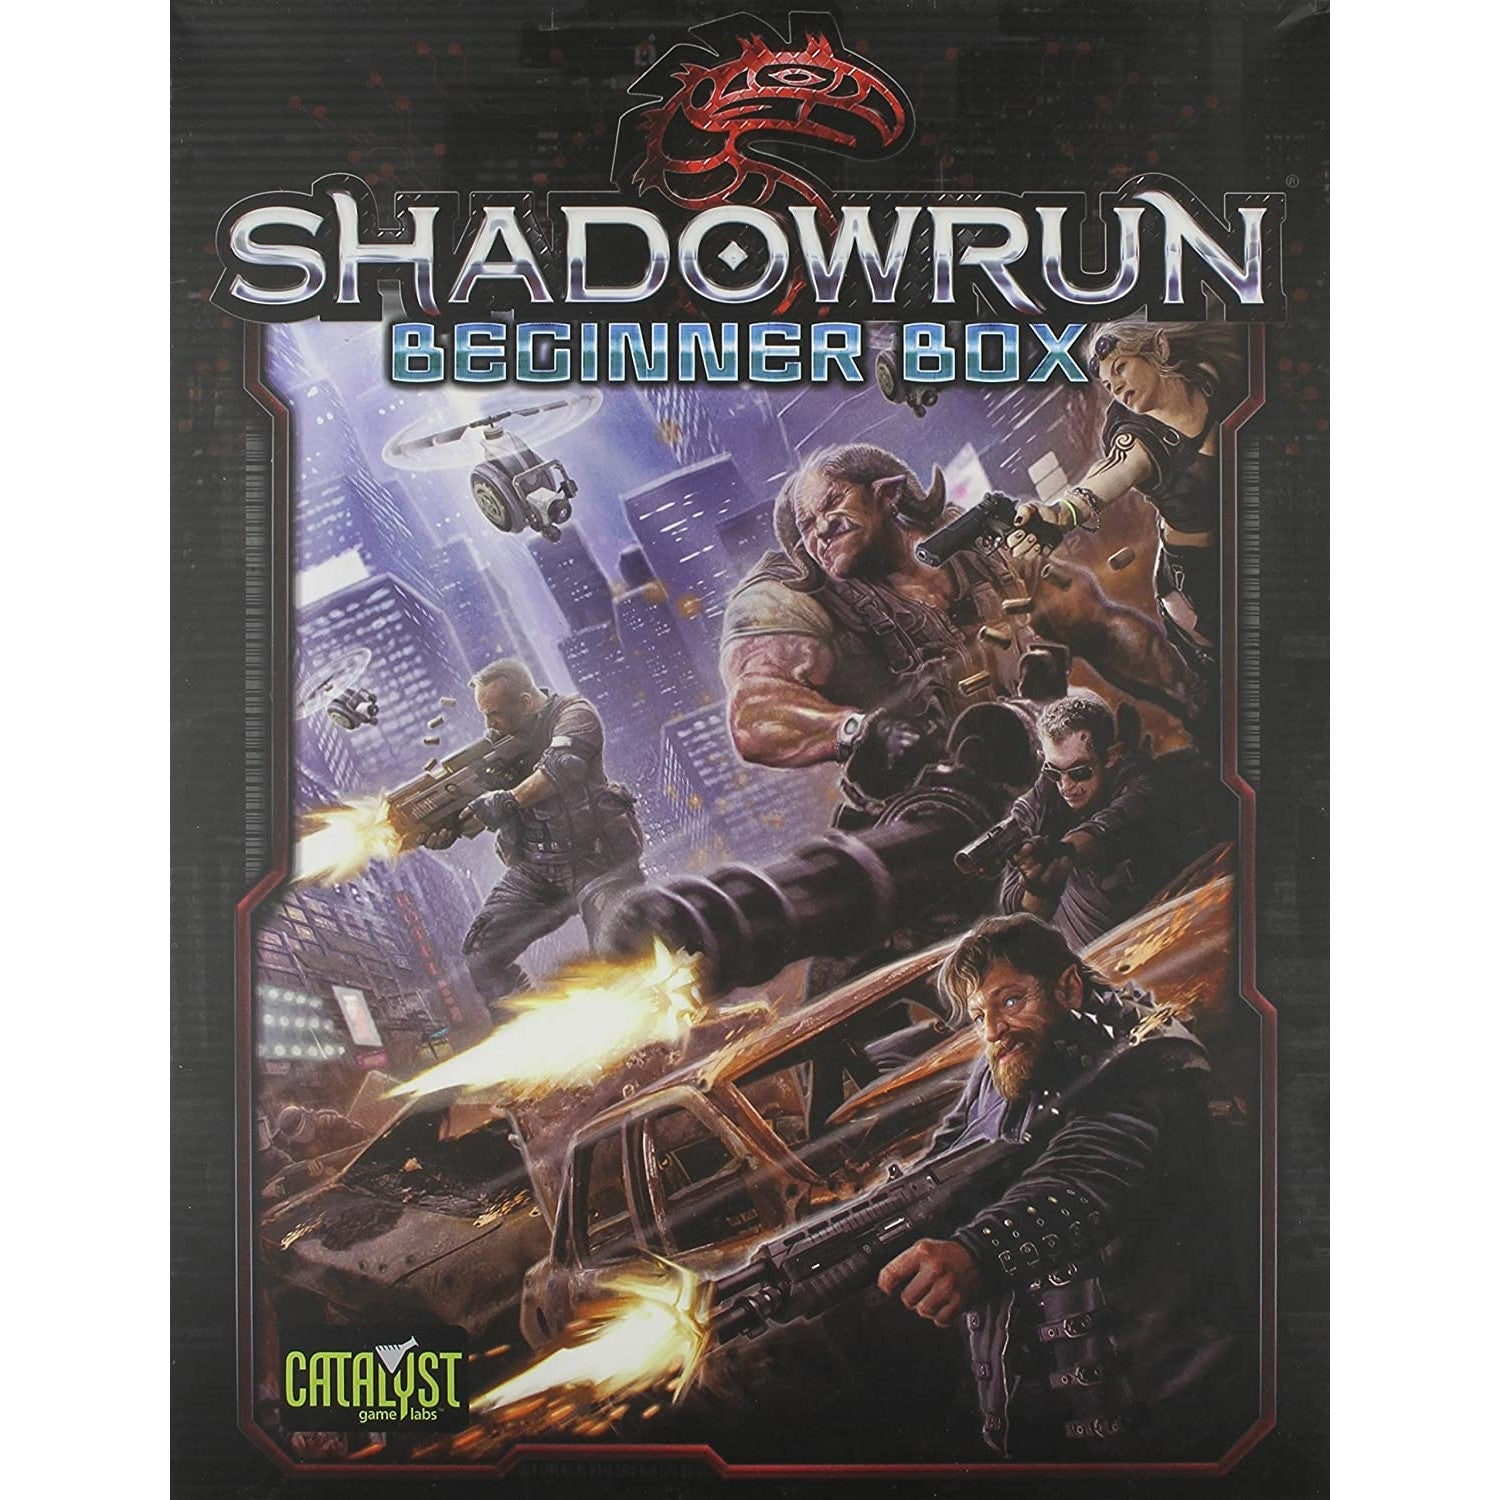 Shadowrun 6th Ed: Sixth World Beginner Box